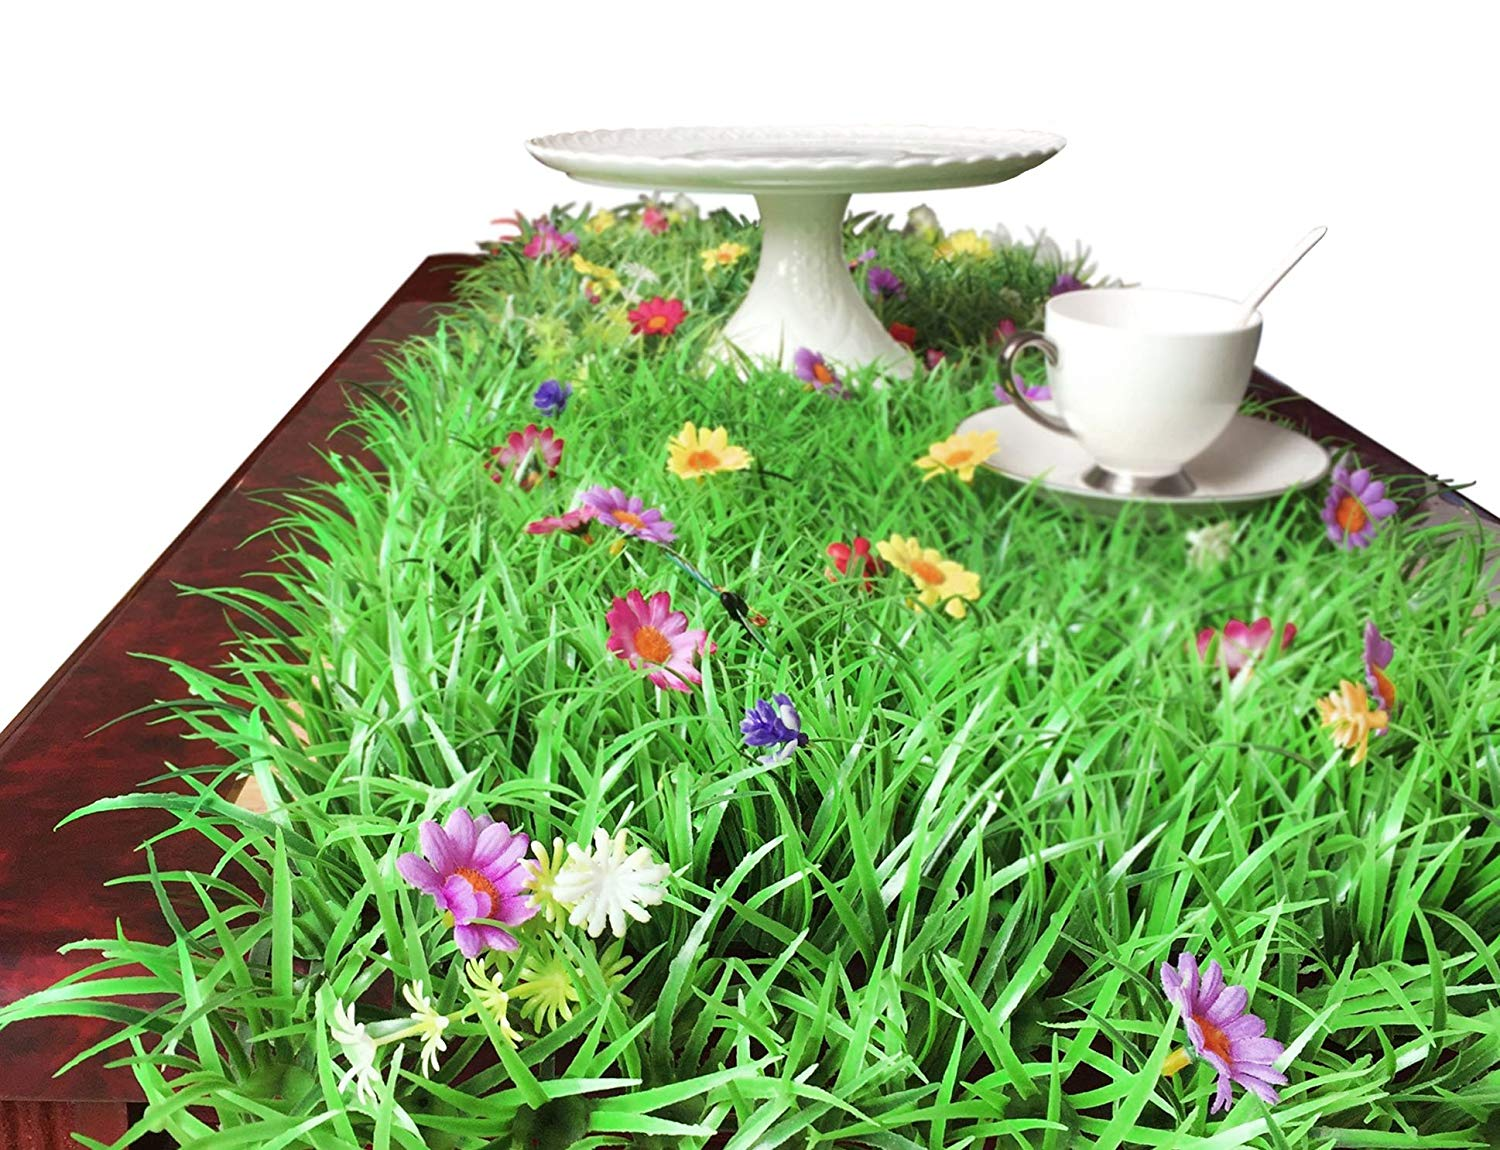 Magicpro 15.8 x 71-Inch Green Artificial Grass Table Top Runner - 3 Pcs Party Table Decorations Table Decor Flower Placemat For Party